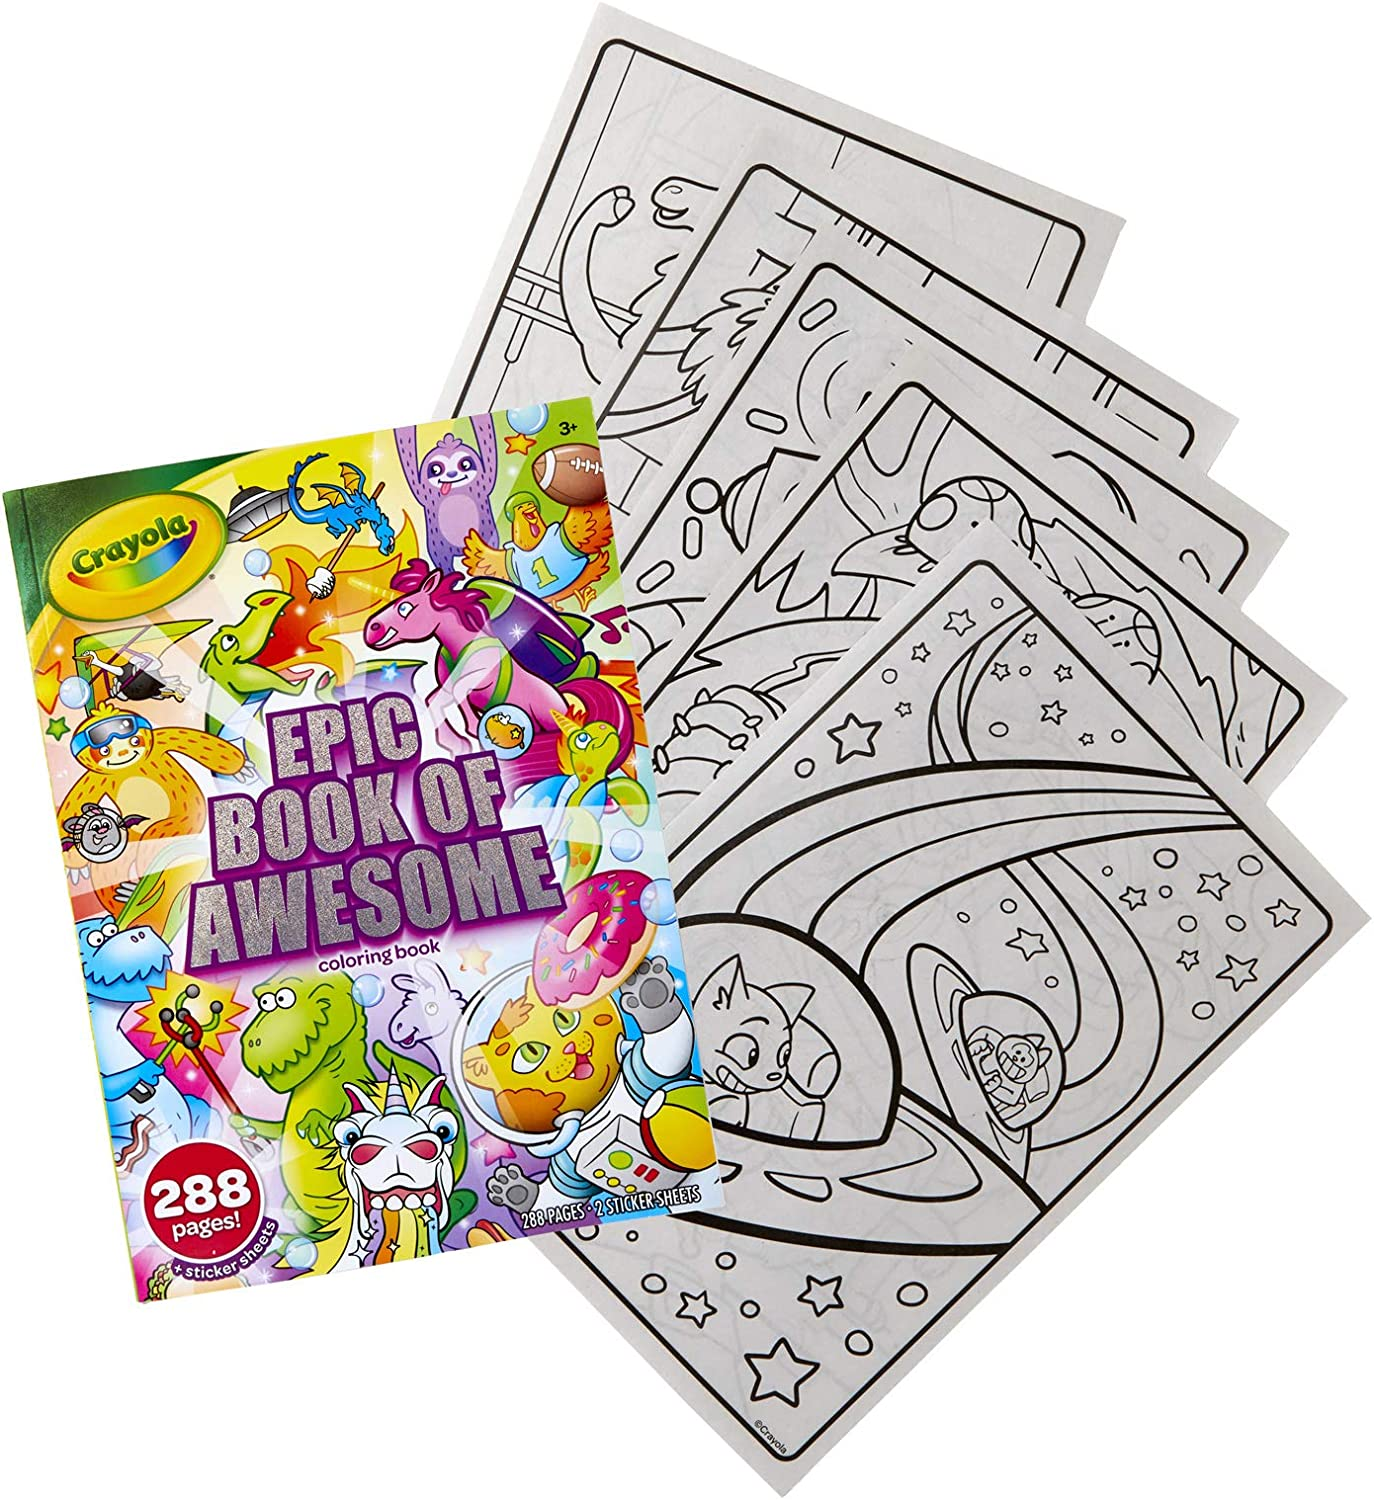 - Amazon.com: Crayola Epic Book Of Awesome, All-in-One Coloring Book